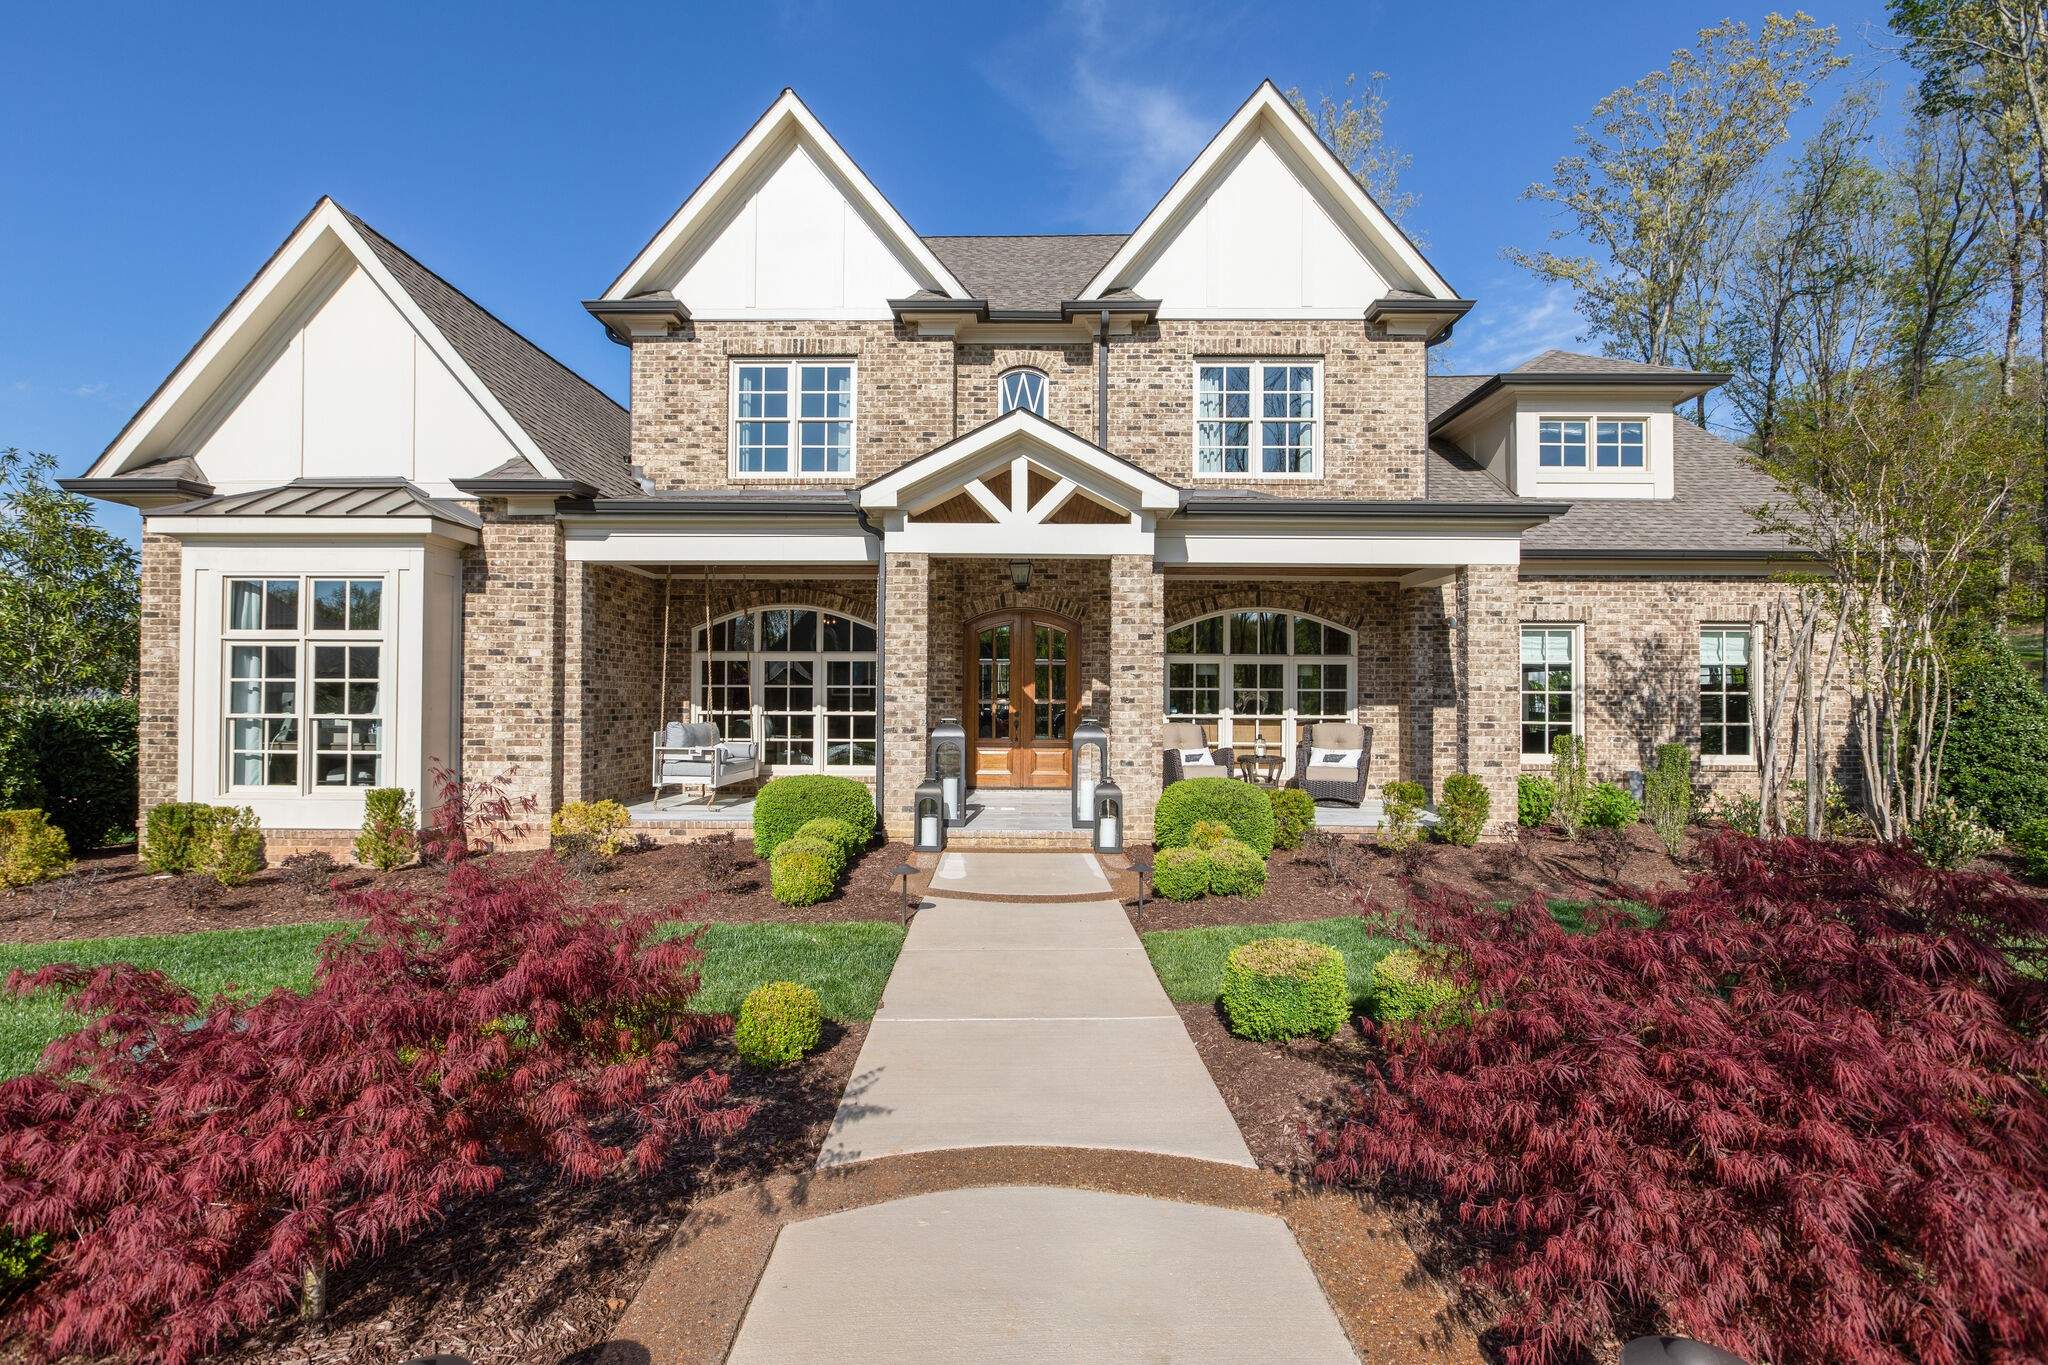 8472 Heirloom Blvd Property Photo - College Grove, TN real estate listing